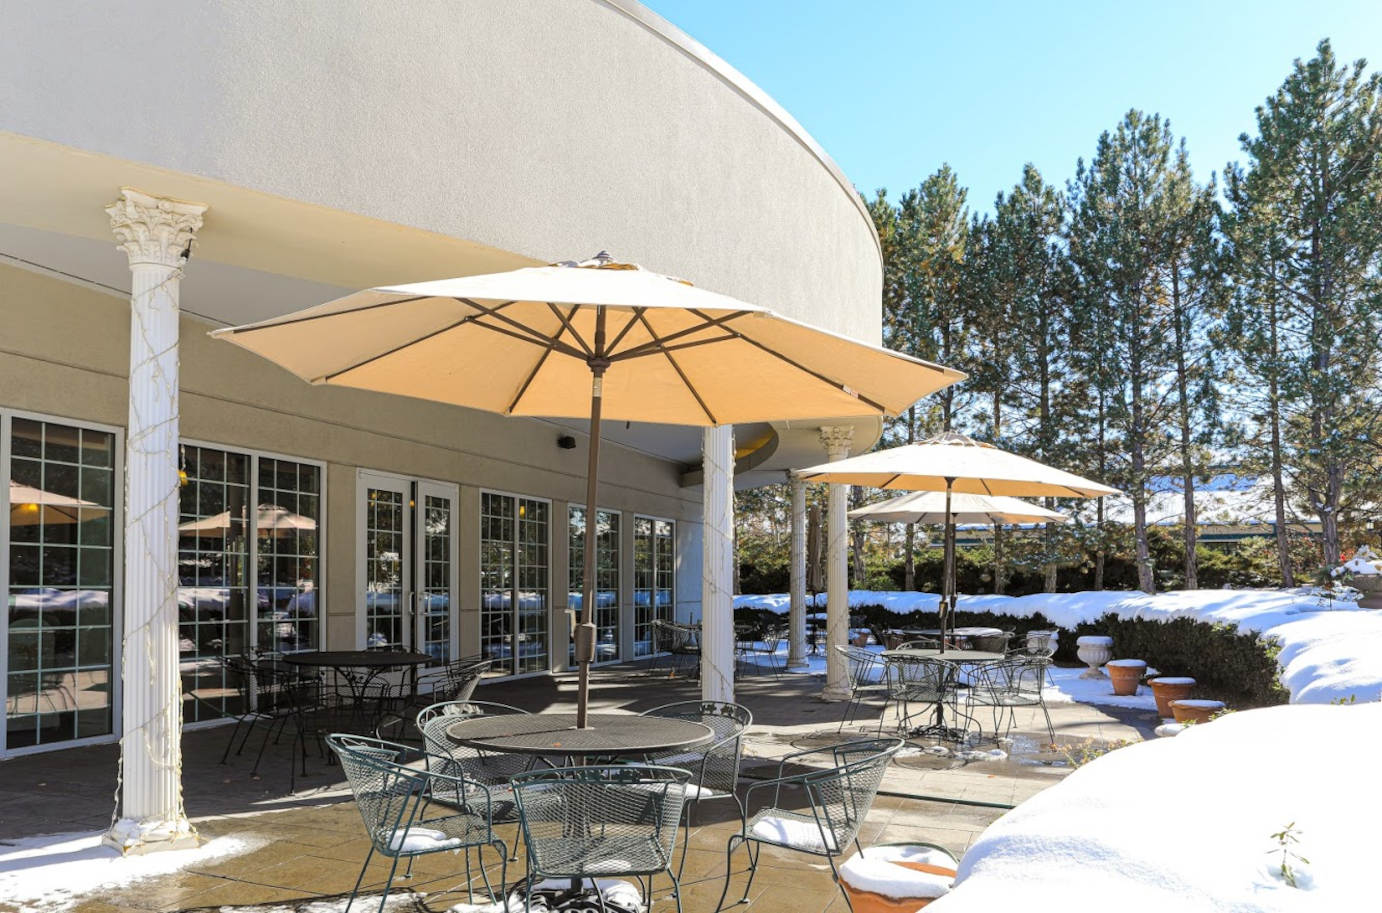 Patio, tables and parasols